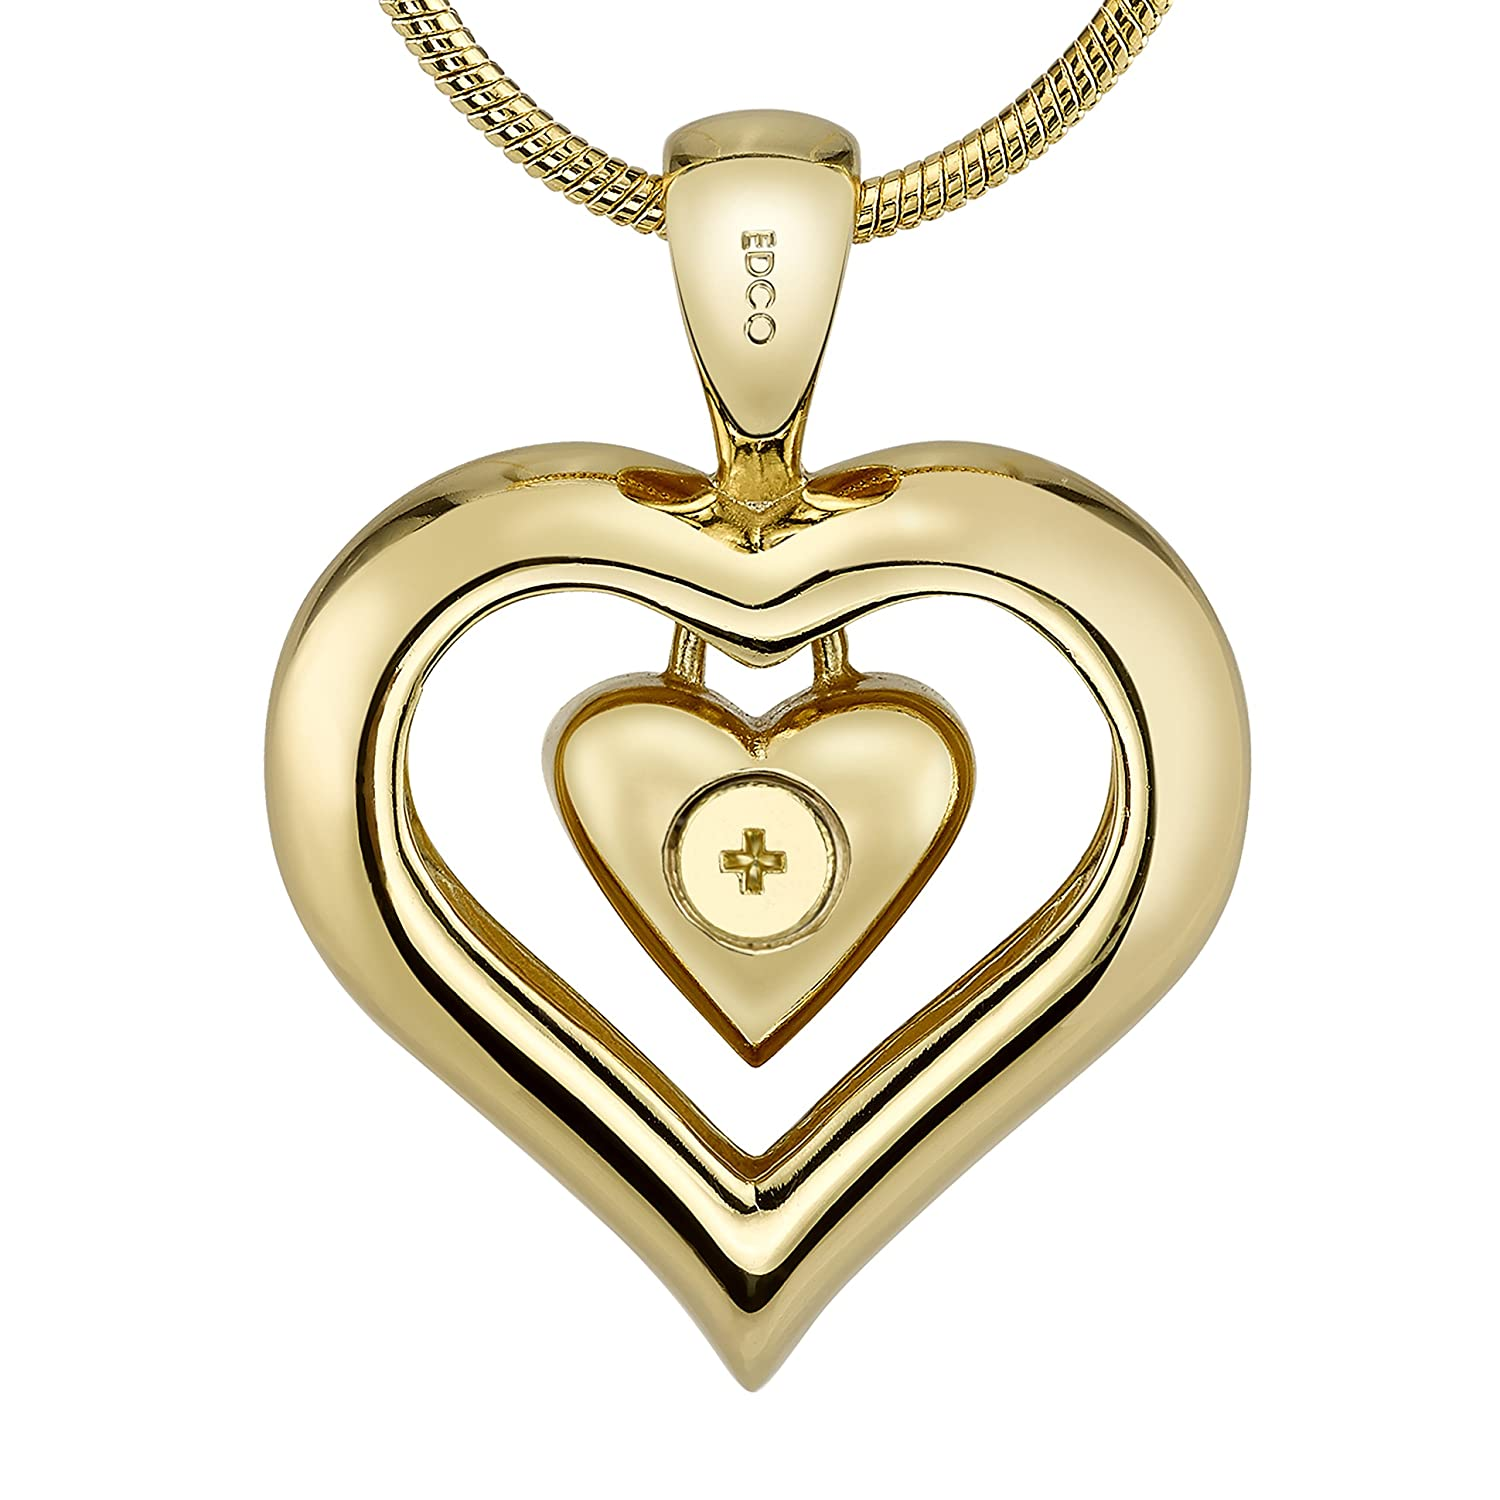 heart keepsake gold jewelry pendant for urn ashes necklace